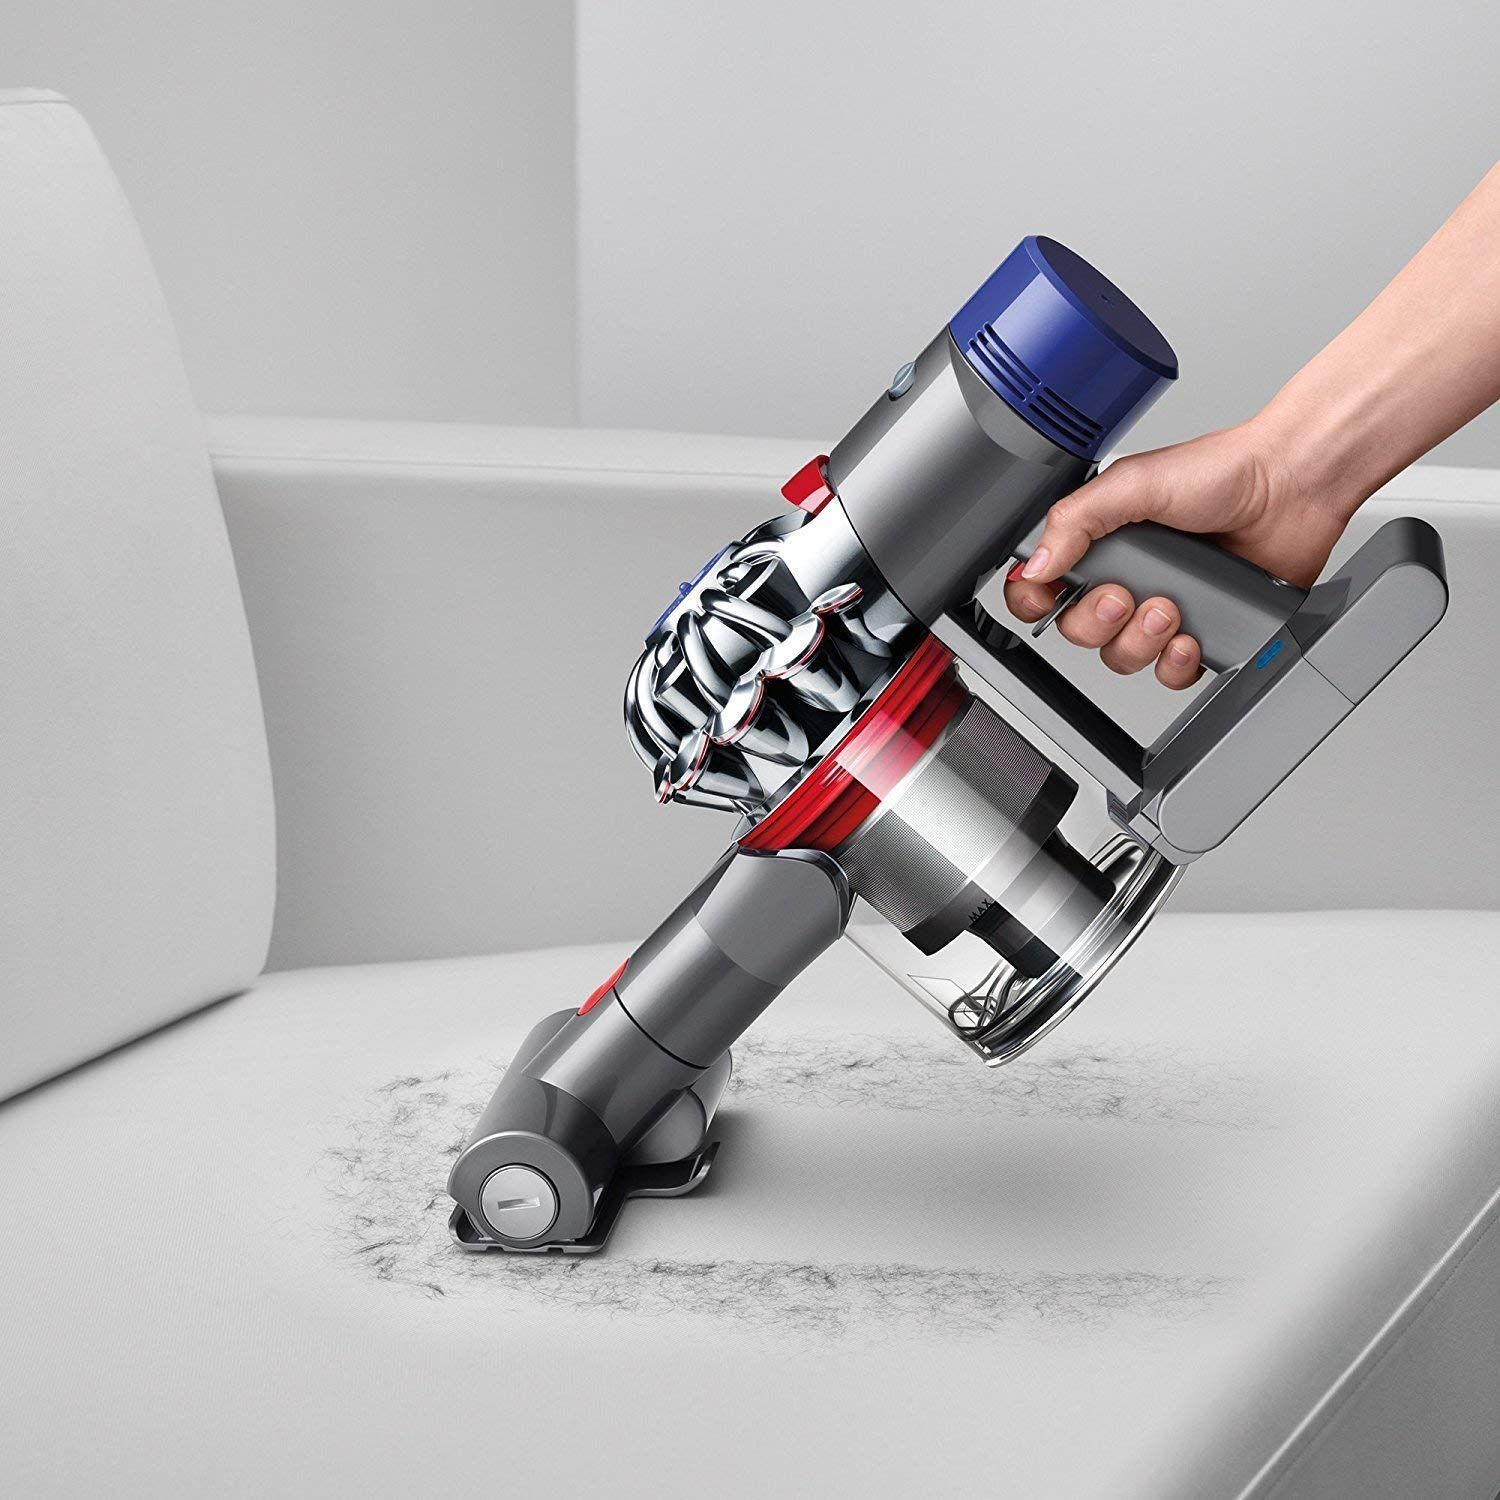 Aspirateur Dyson V8 Absolute Dyson V8 Absolute Cordless Hepa Vacuum Cleaner Manufacturer S